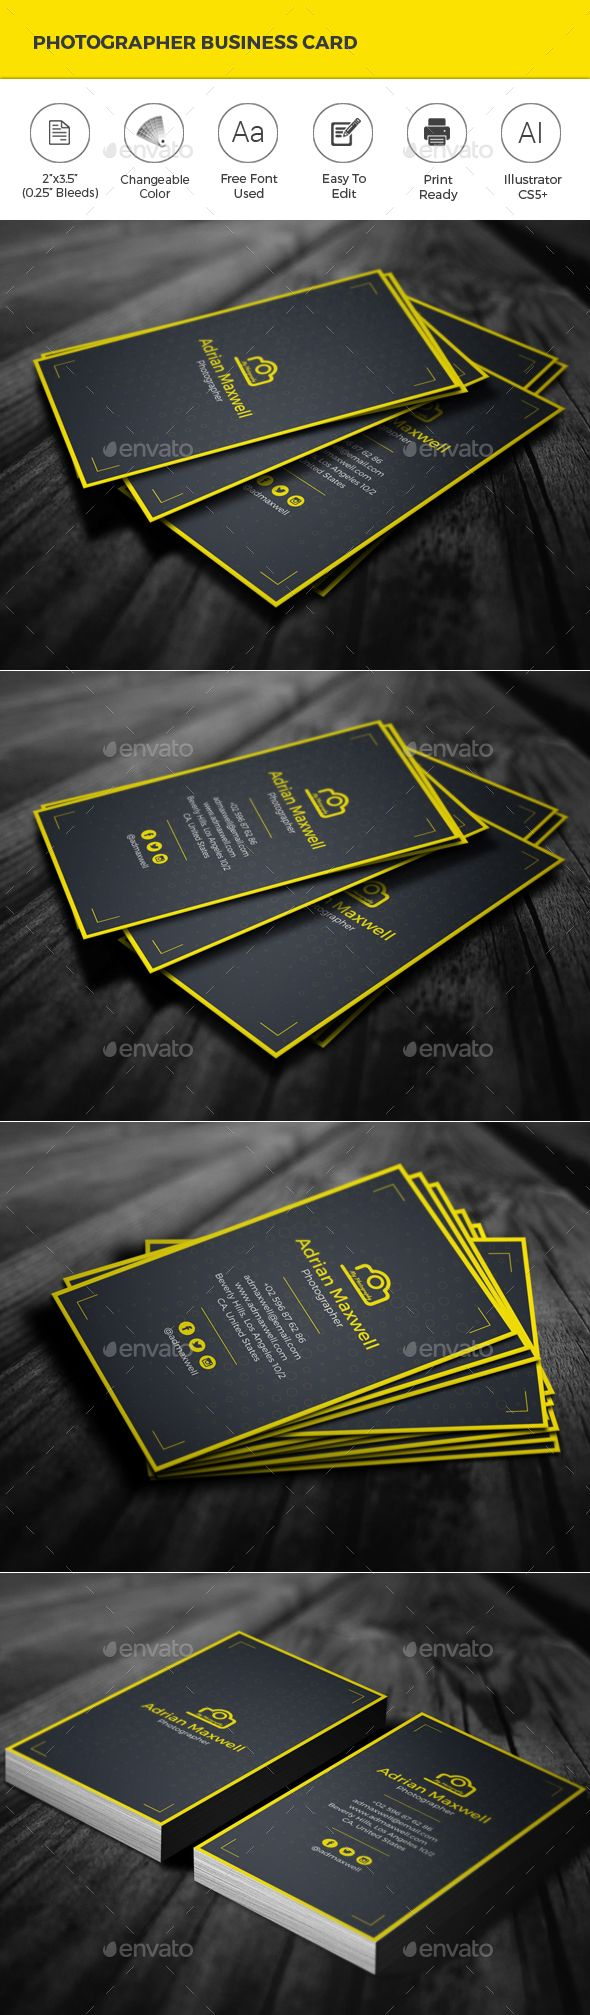 Photographer business card photographer business cards business photographer business card design template creative business card template vector eps ai illustrator reheart Image collections